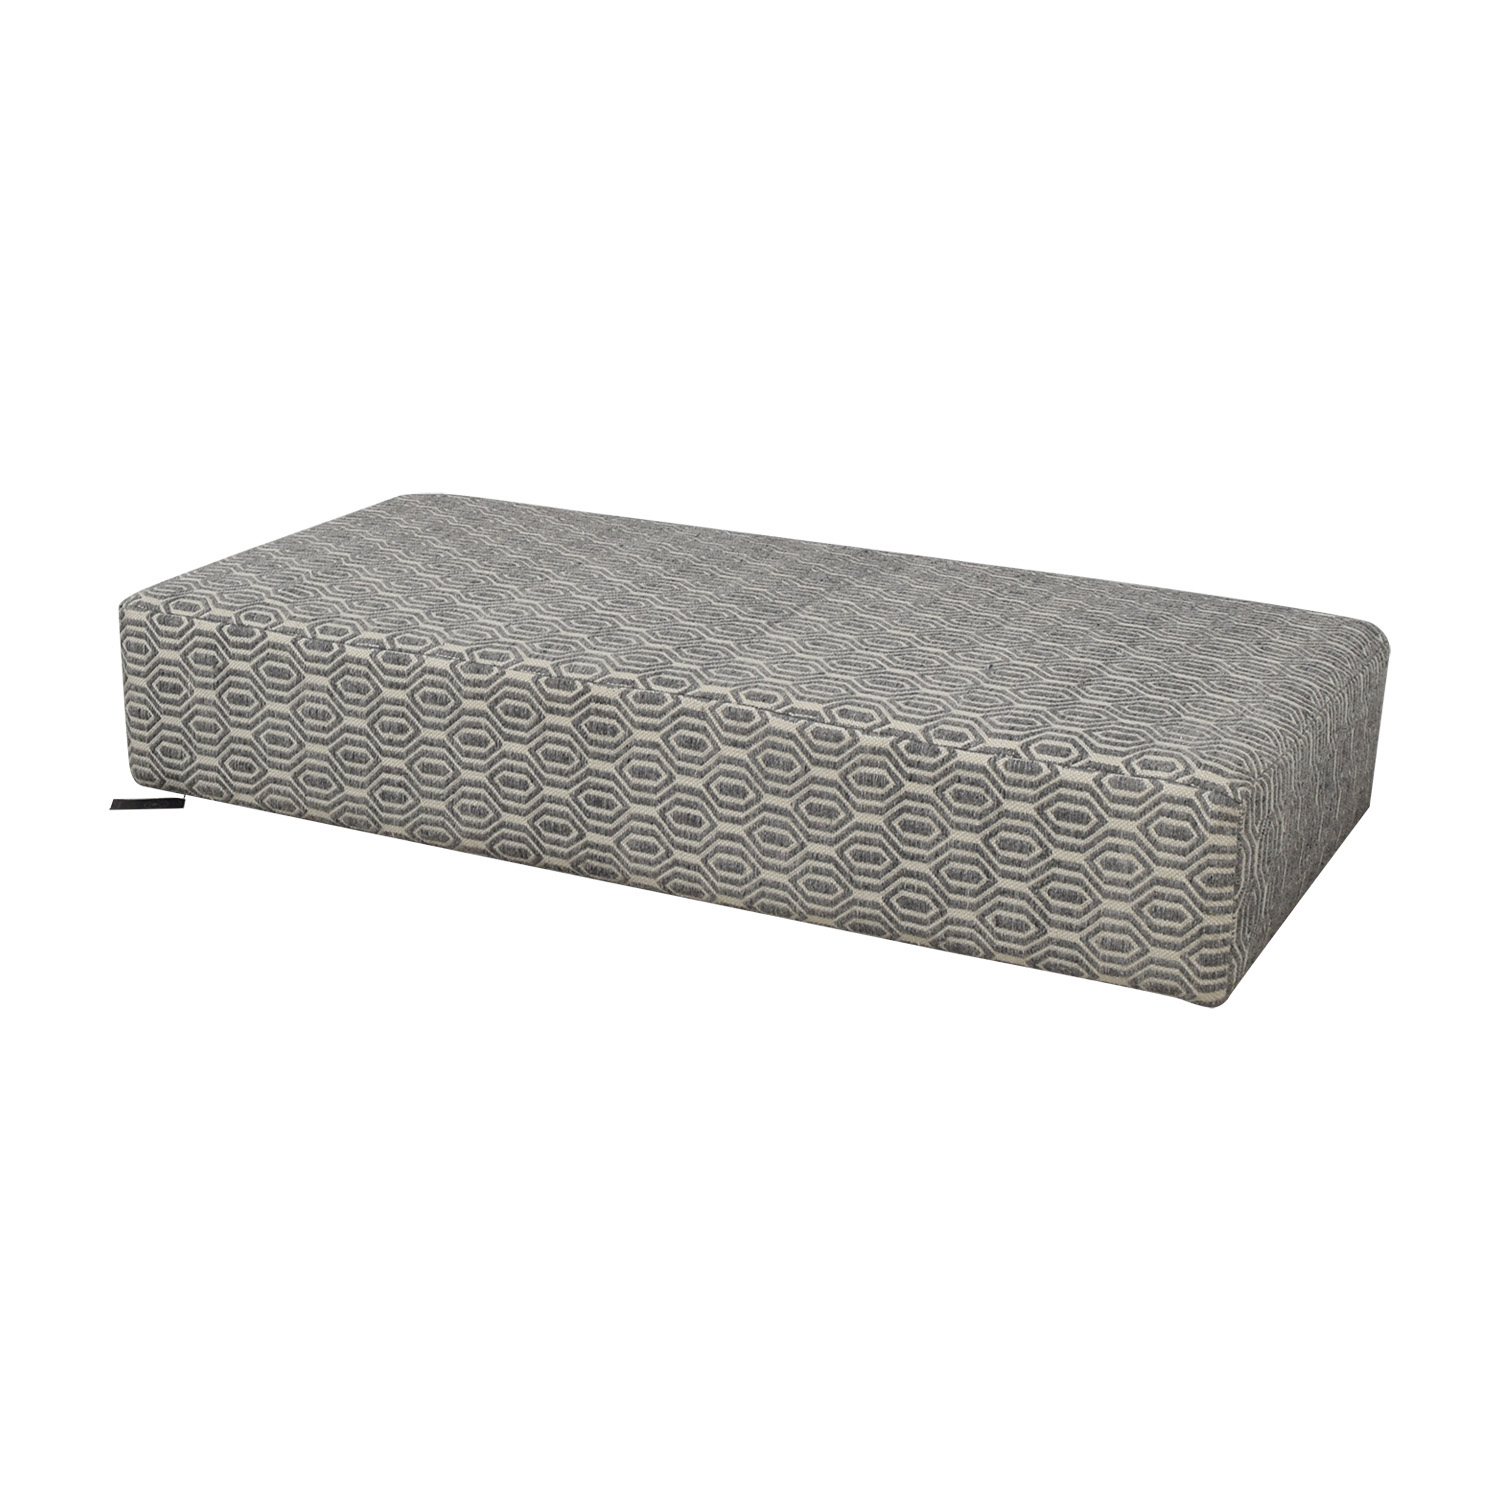 buy Manor and Mews Grey and White Floor Sofa Manor and Mews Chaises